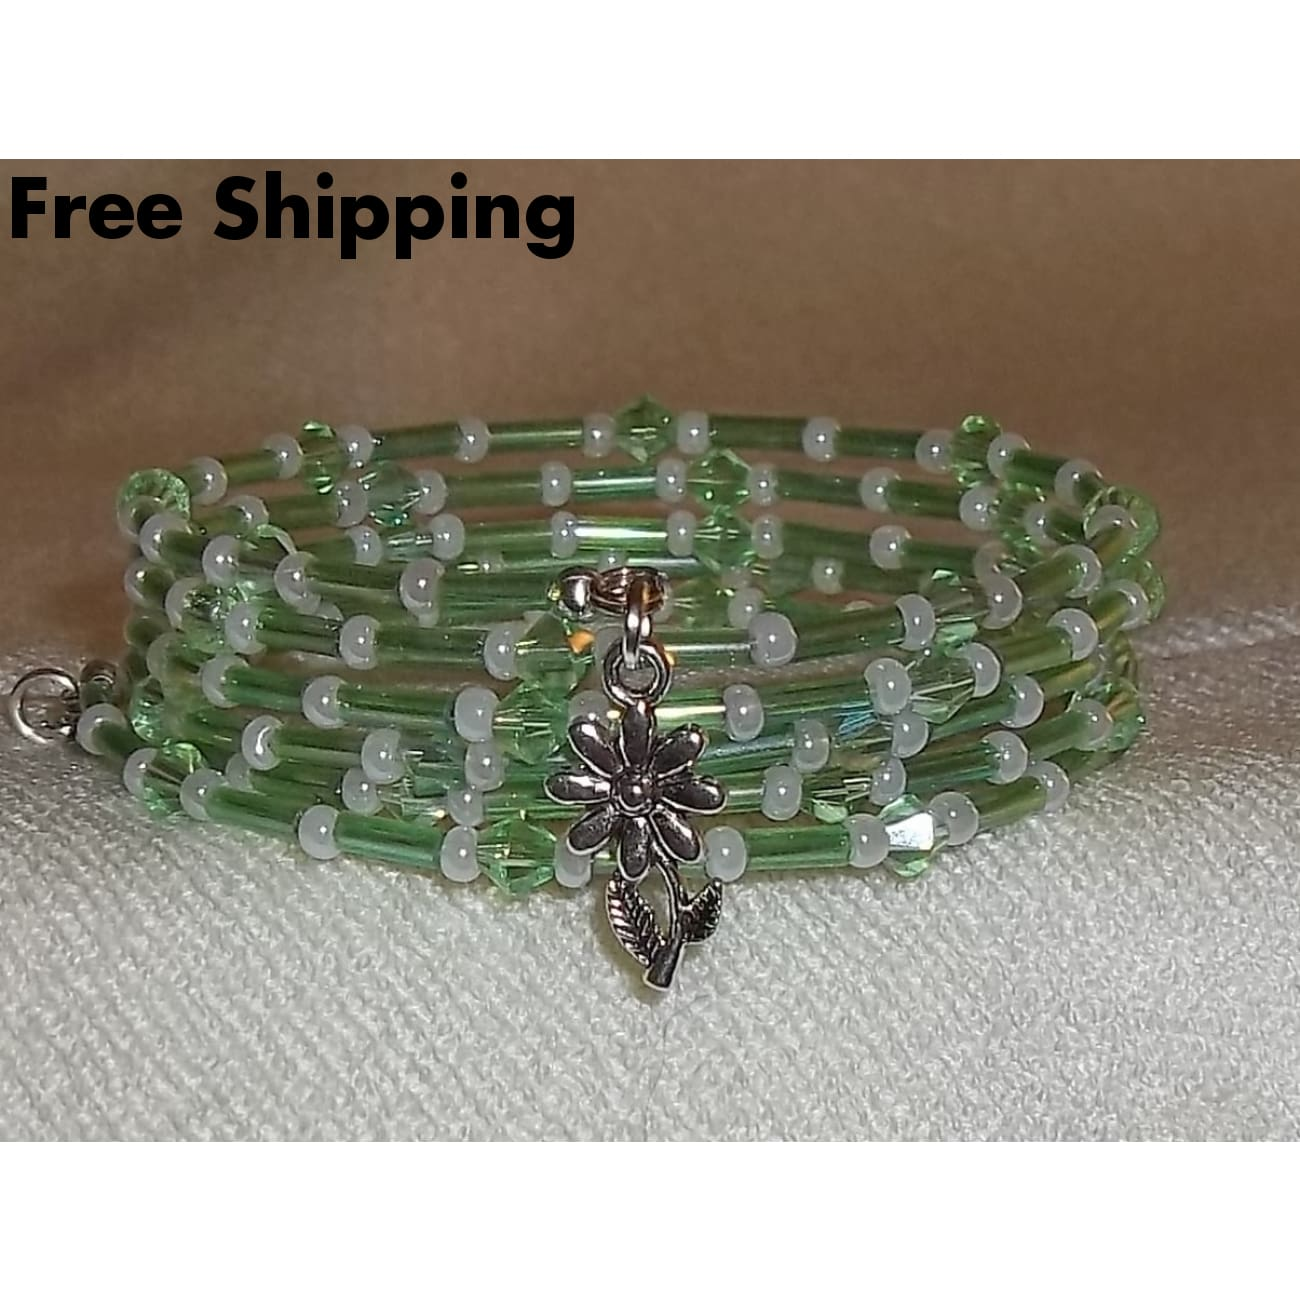 Flower Green Swarovski Crystal Glass Bugle Bead & White Pearl Preciosa Beaded Silver Ooak Artisan Crafted Wrap Bracelet - Bracelets